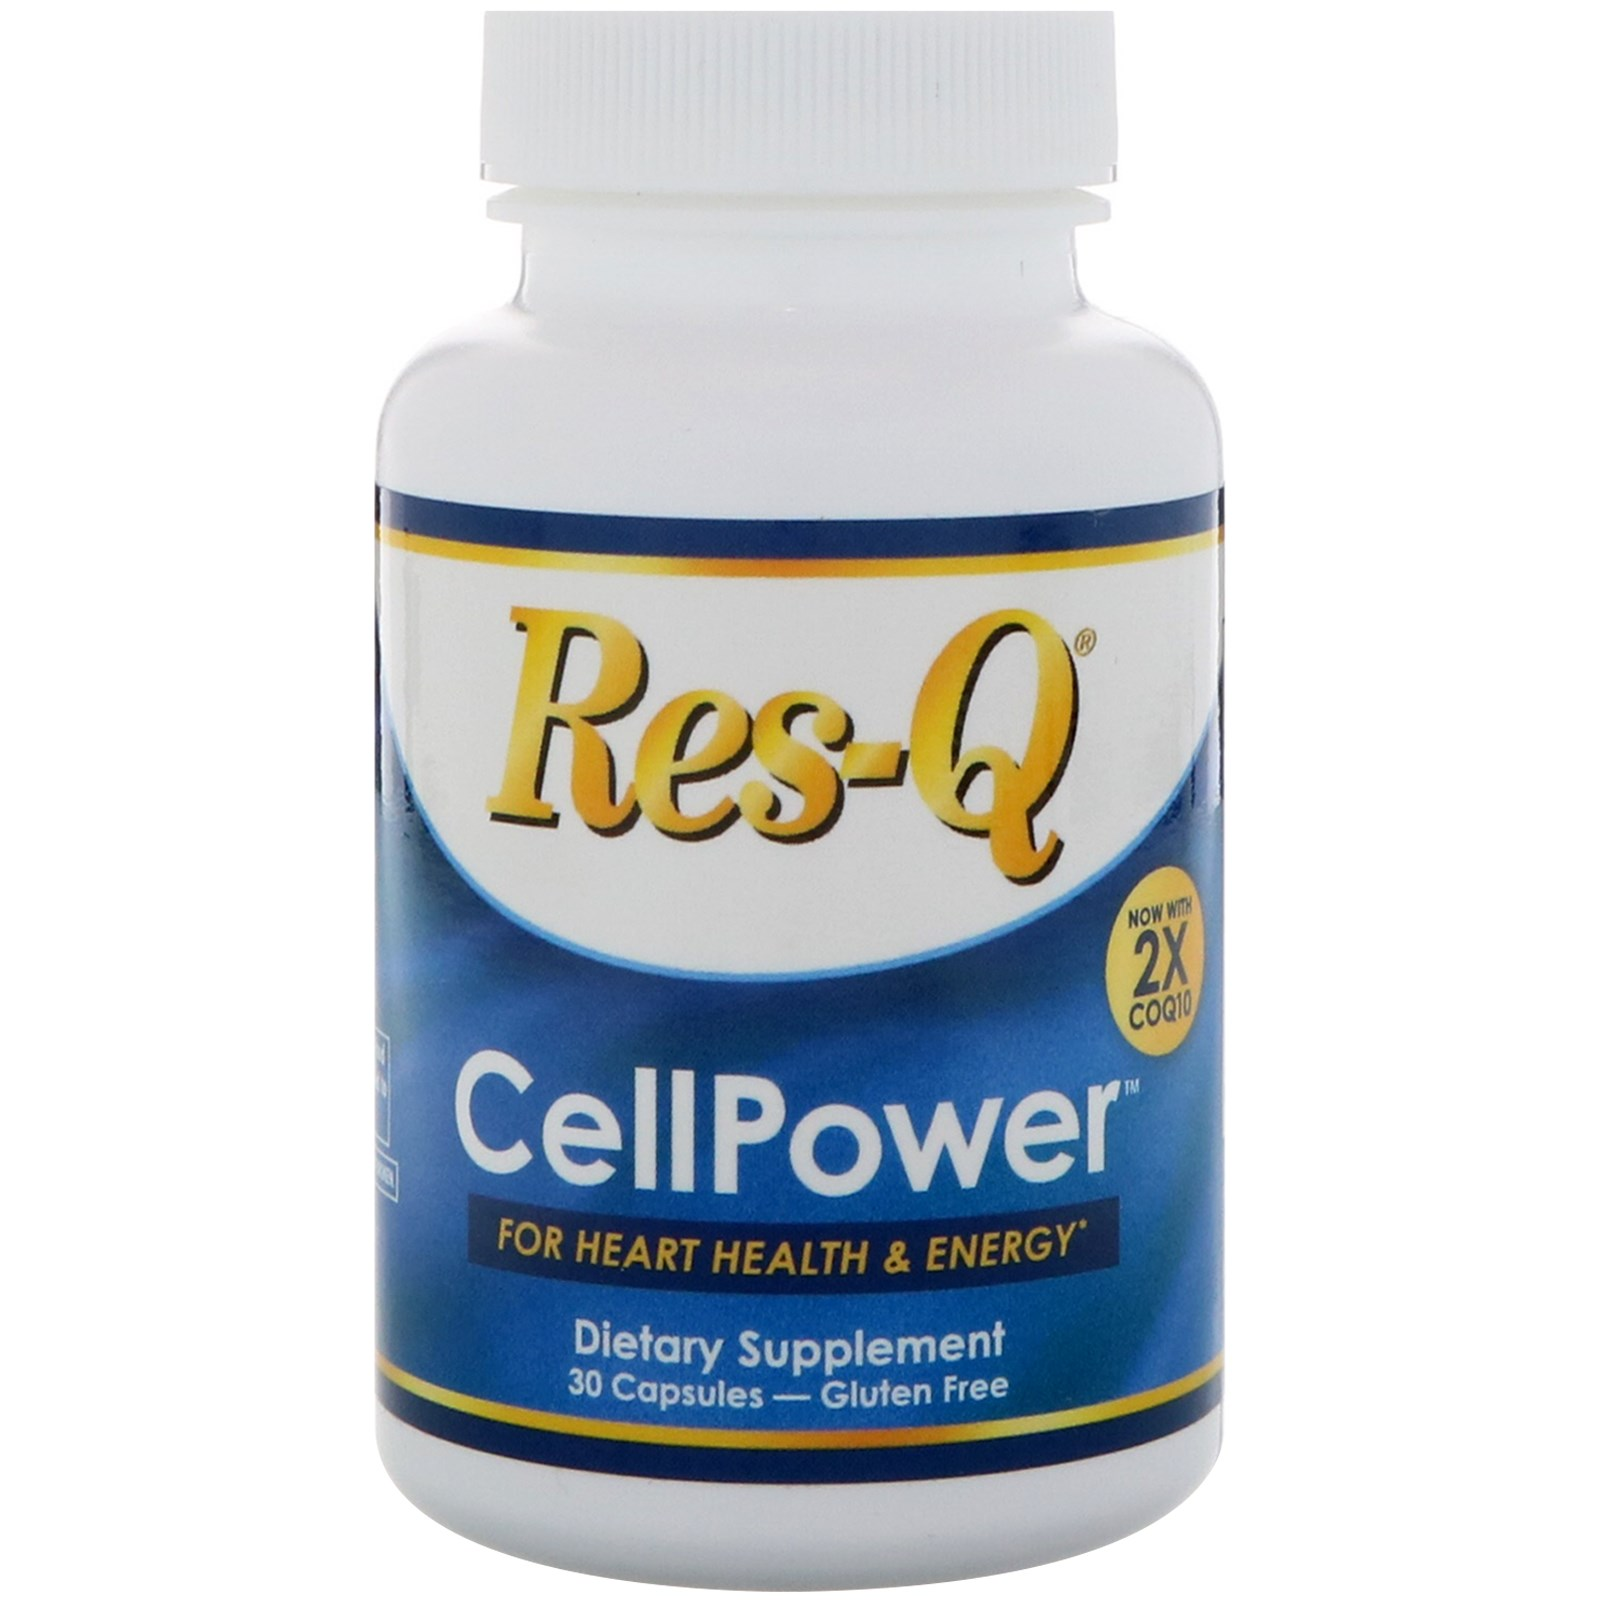 Res-Q, CellPower, 2X CoQ10, 30 Capsules